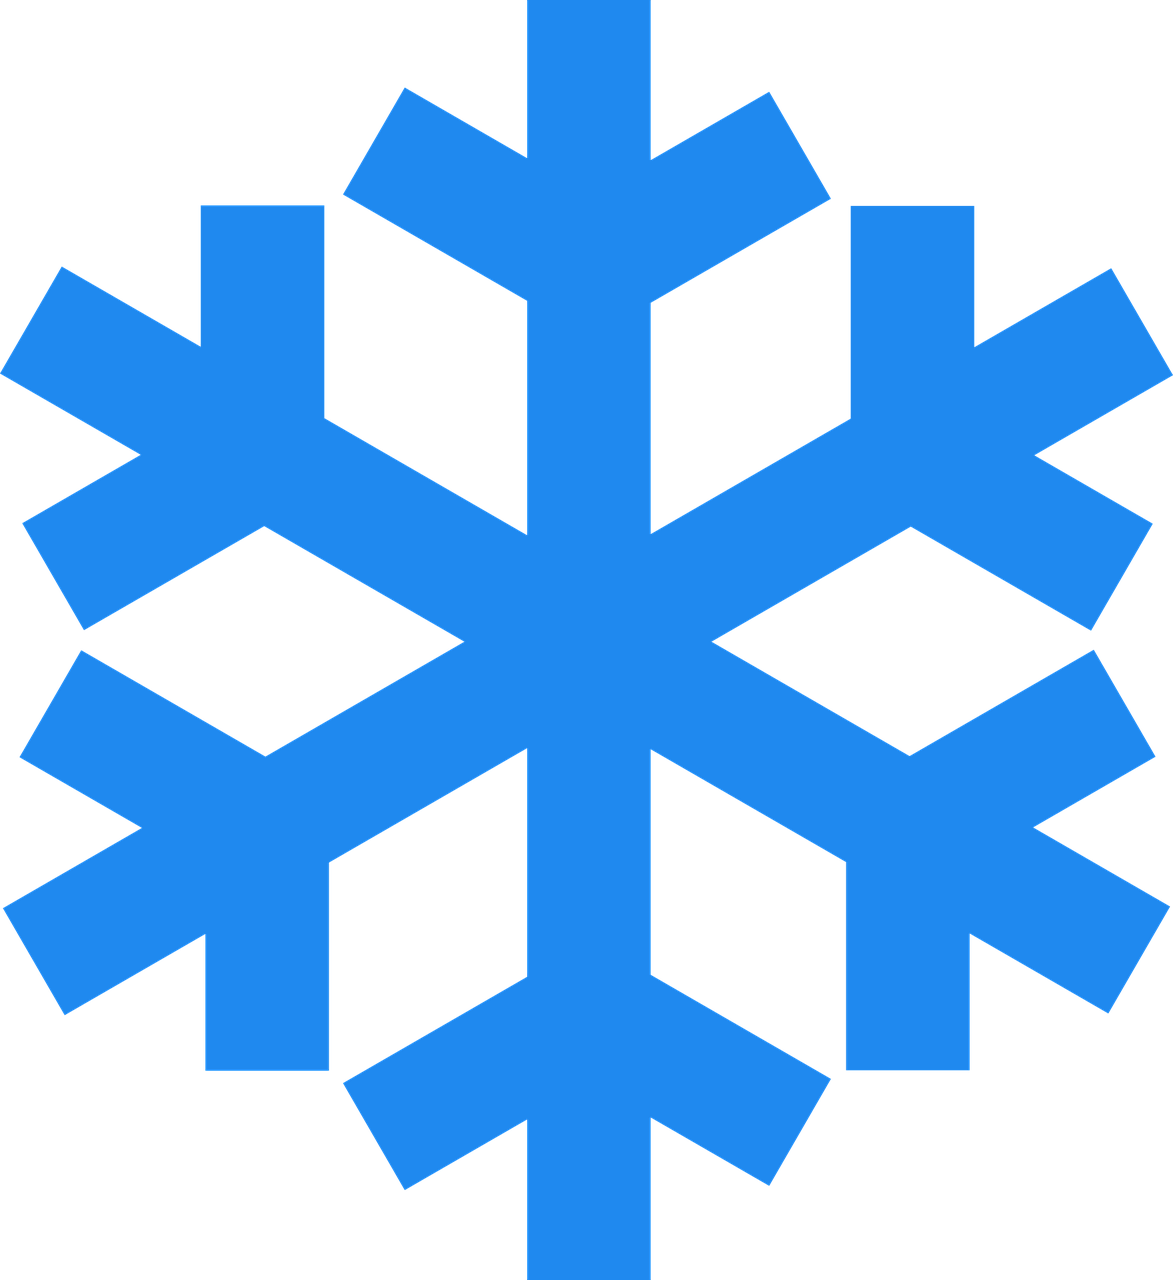 Ice and snowflake clipart vector royalty free stock Snowflake Winter Ice Crystal PNG Image - Picpng vector royalty free stock